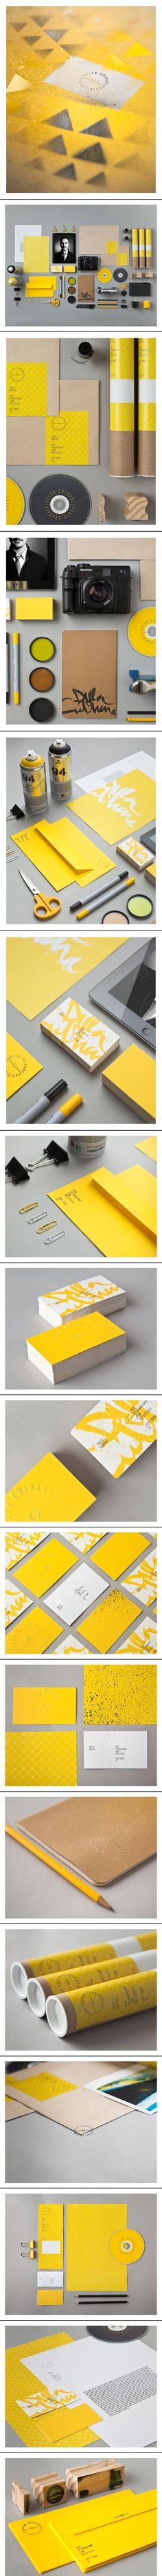 Dylan Culhane. Corporate Design